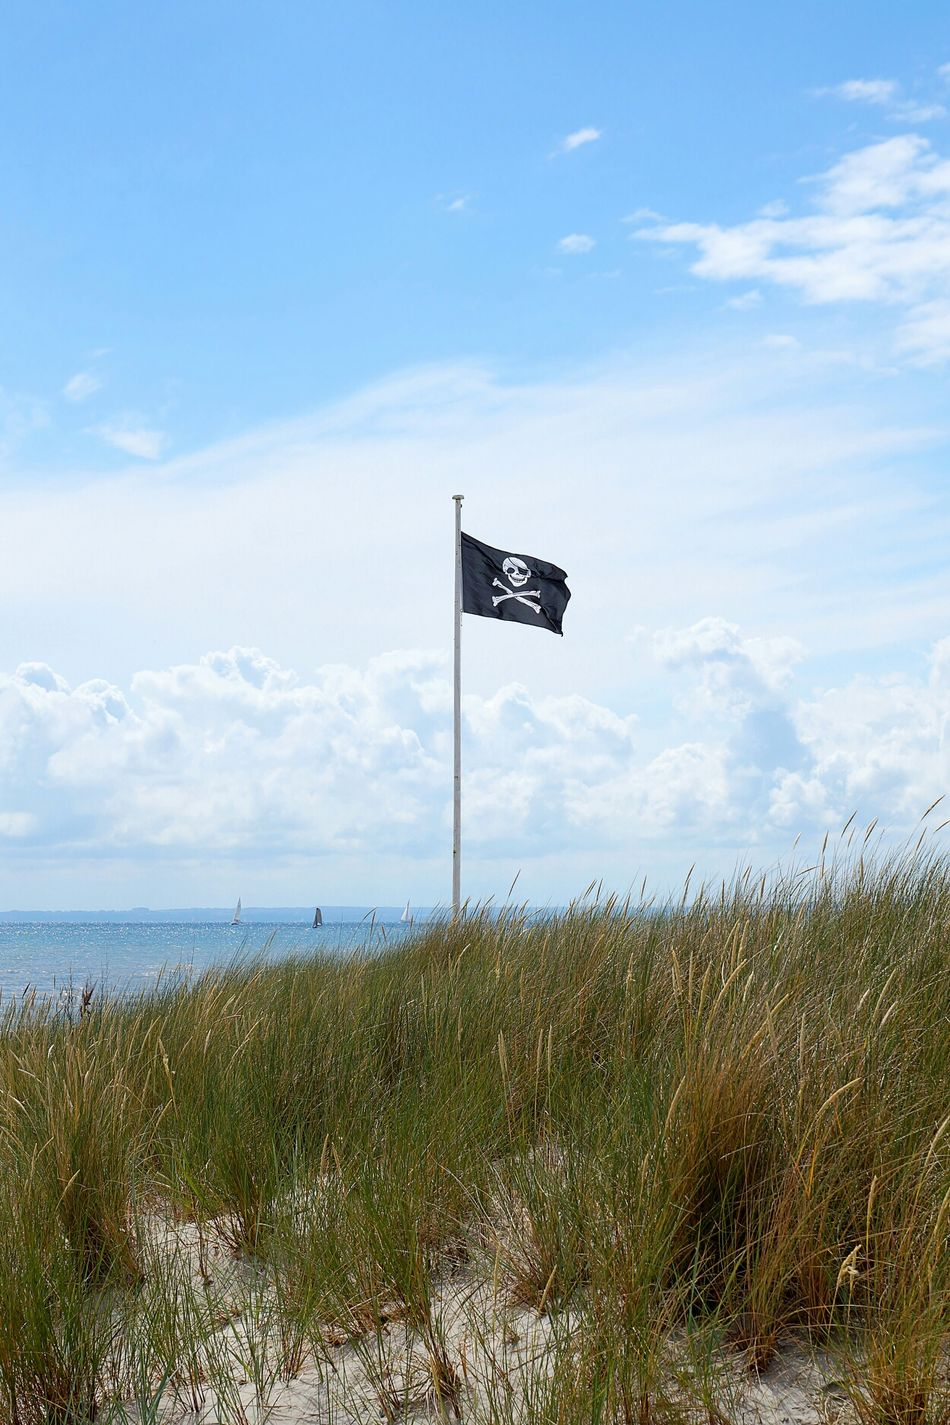 Beautiful stock photos of pirate, flag, grass, identity, water